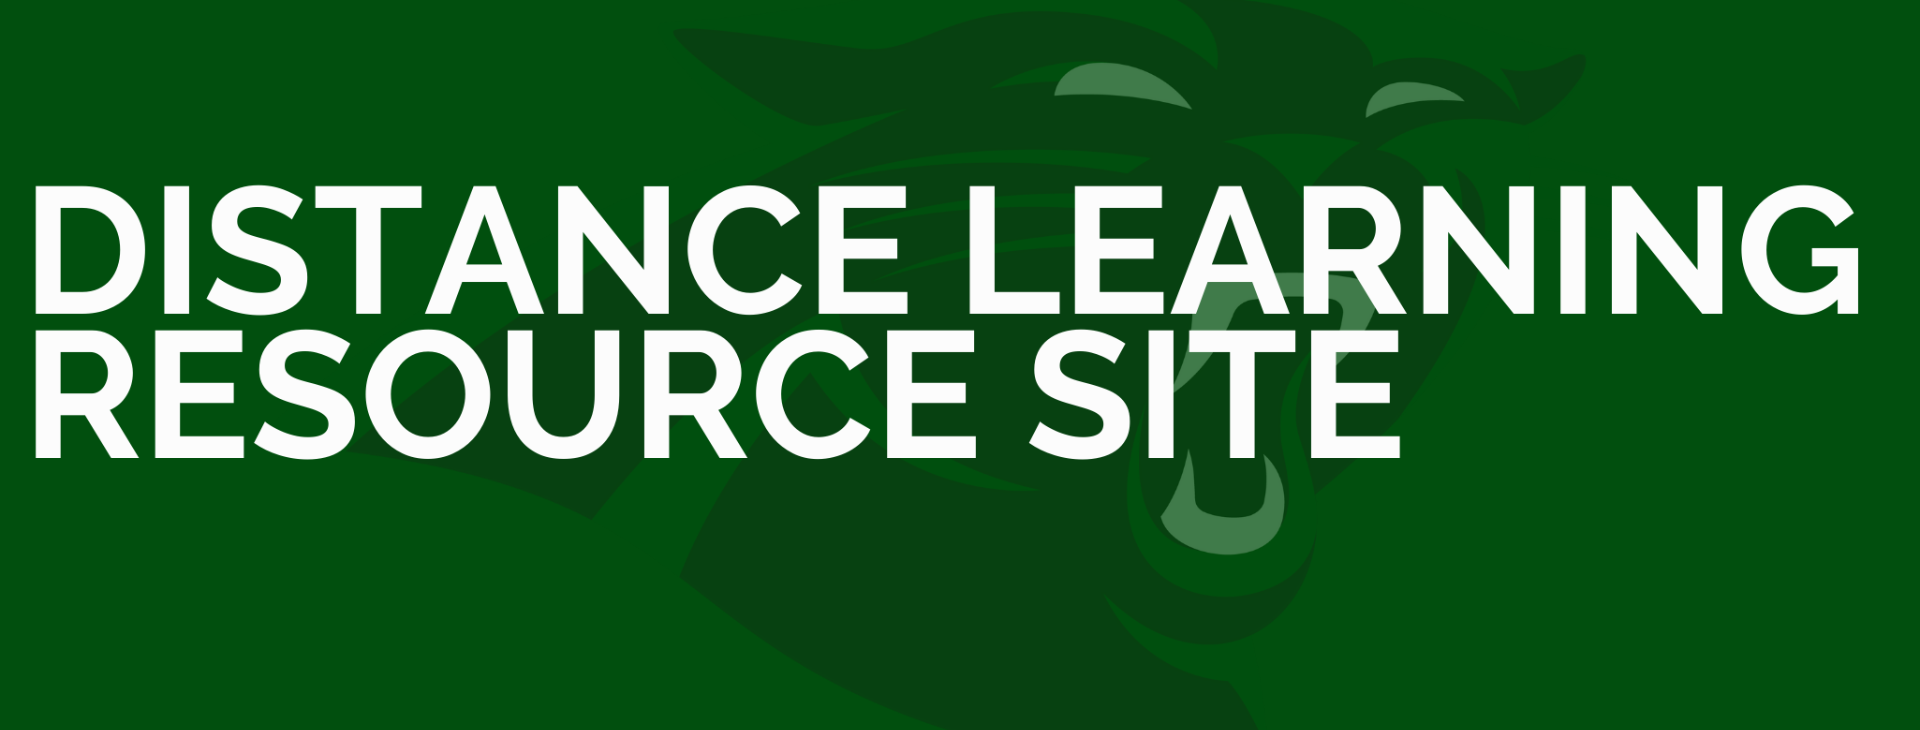 Distance Learning Site